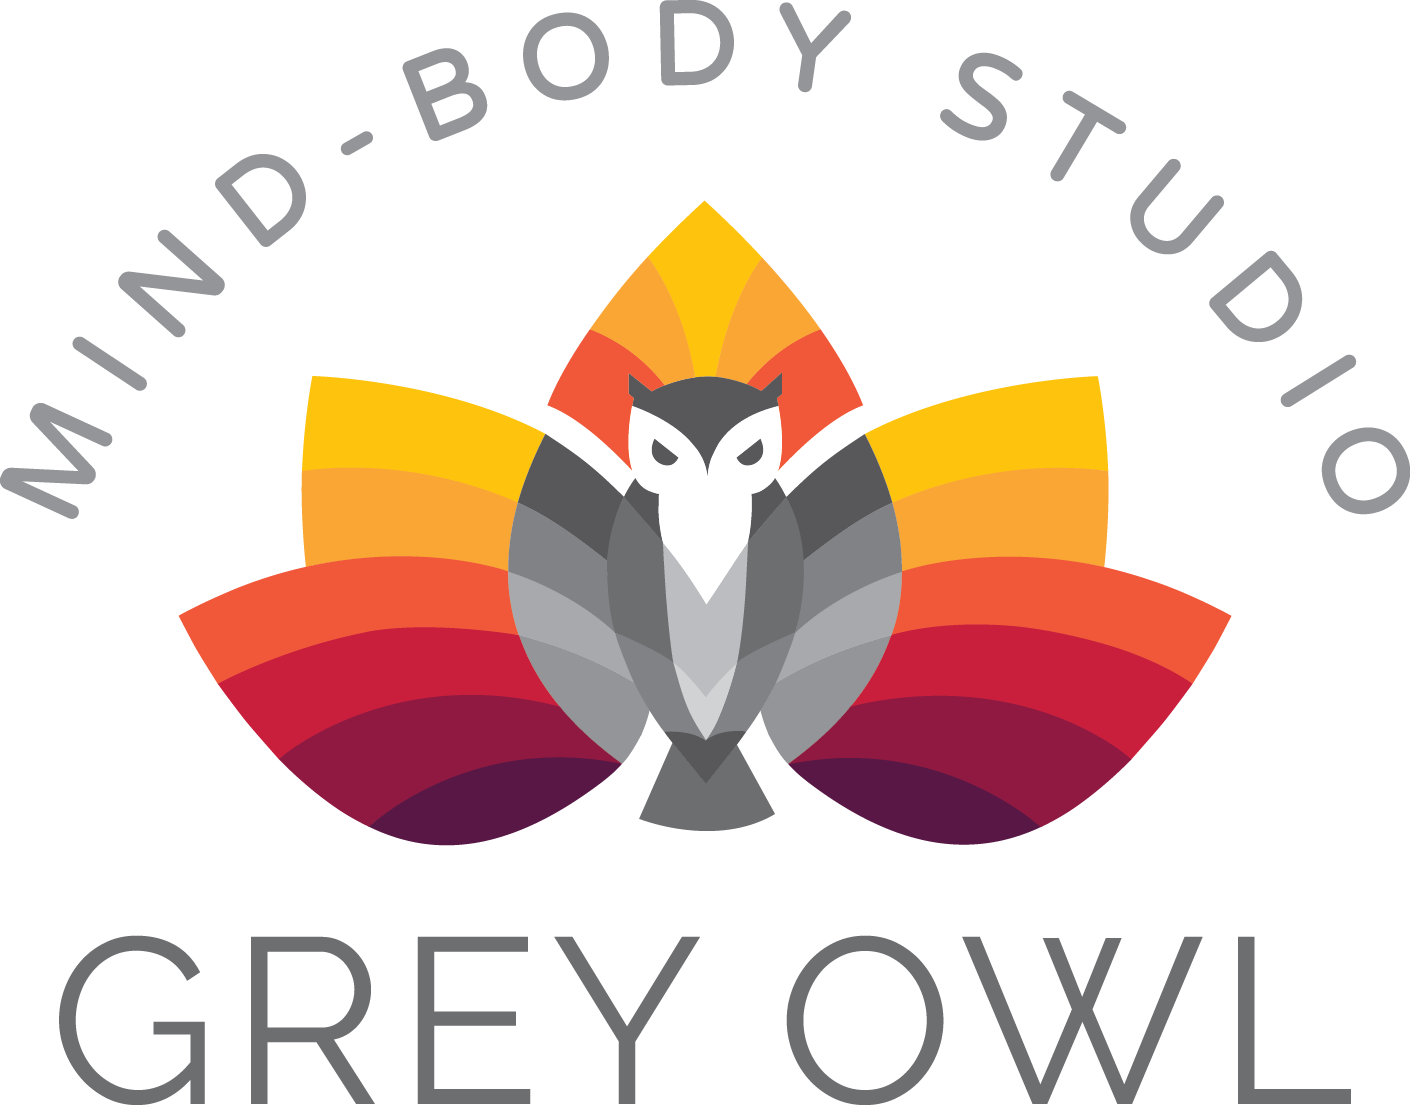 Seeking hipster, modern, minimal line owl logo with grey and gradient colors